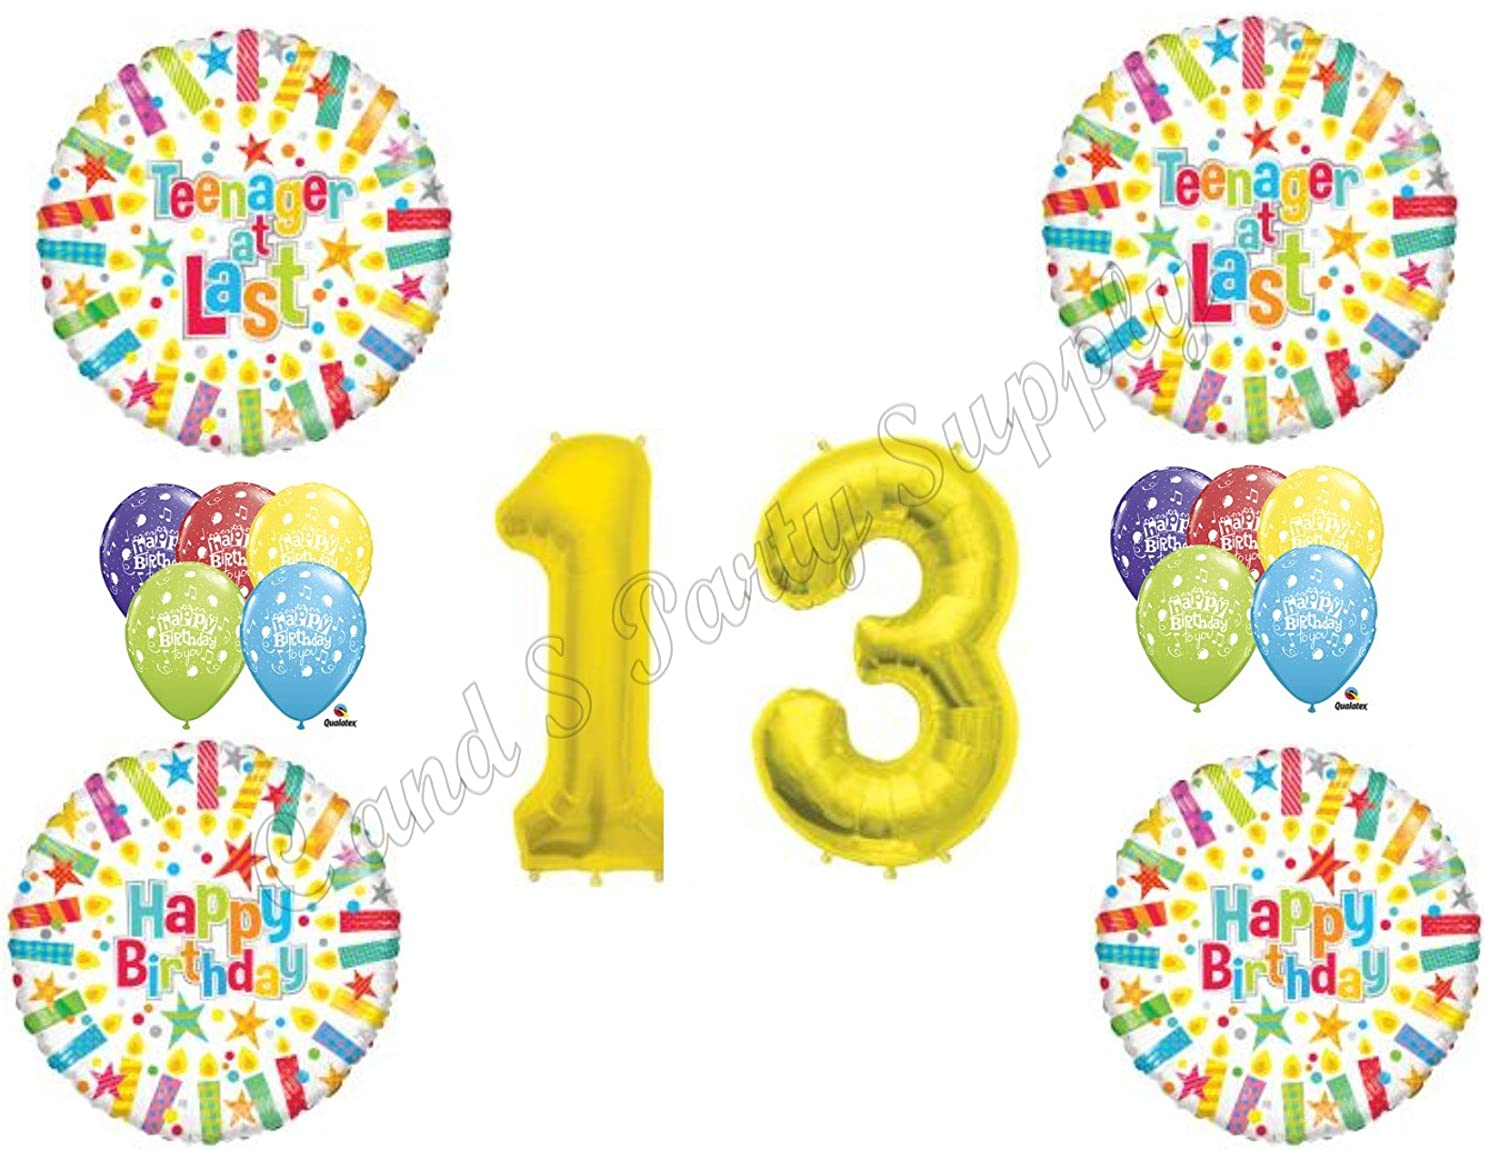 Amazon 13TH THIRTEENTH Teenager At Last Happy Birthday Balloons Decoration Supplies By Anagram Toys Games